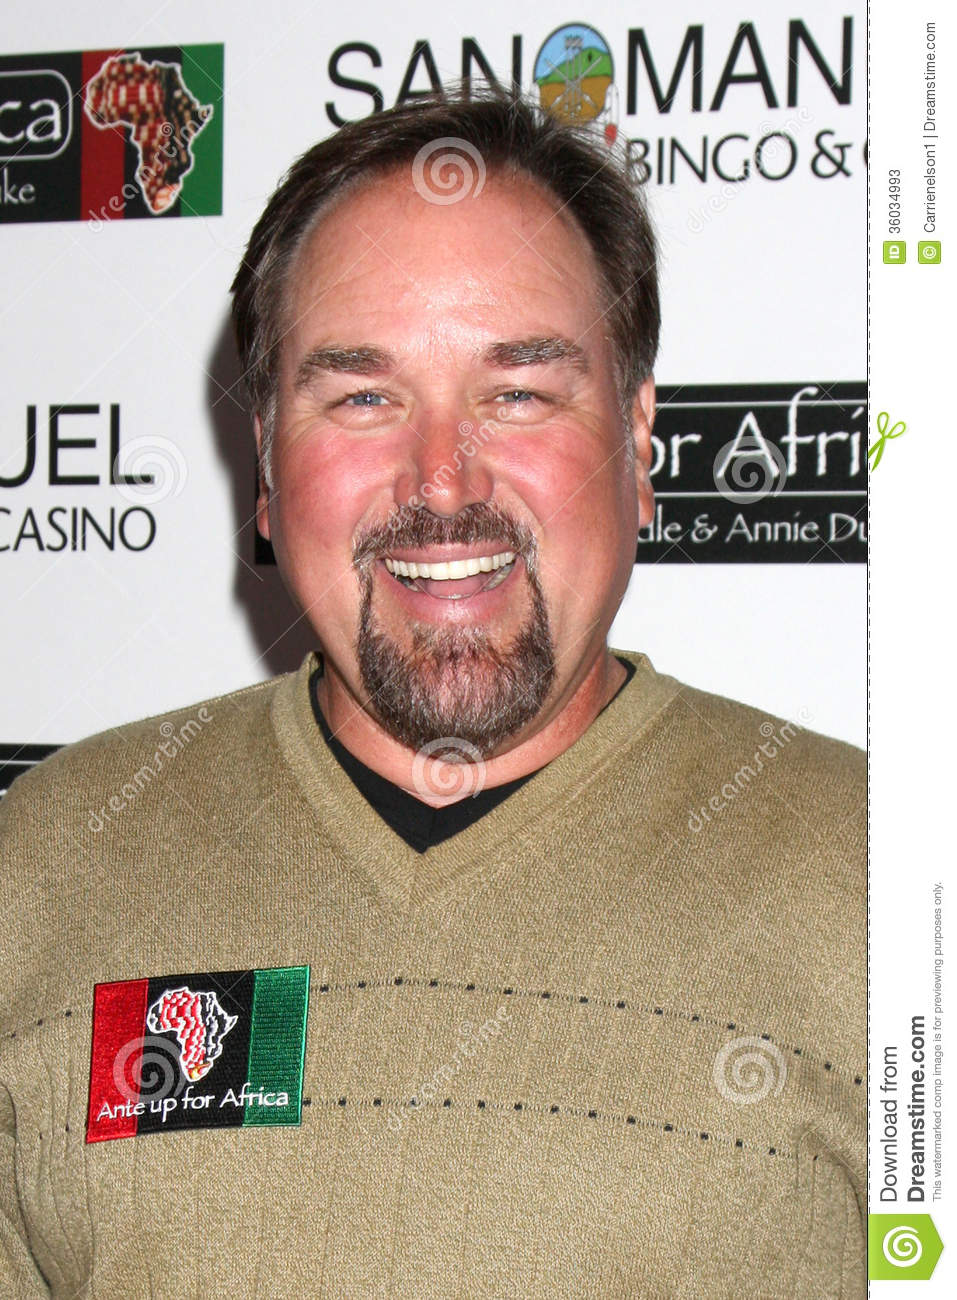 richard karn deadrichard karn net worth, richard karn wife, richard karn dead, richard karn death, richard karn on last man standing, richard karn age, richard karn commercial, richard karn 2016, richard karn brother, richard karn imdb, richard karn 2017, richard karn now, richard karn death date, richard karn young, richard karn twitter, richard karn politics, richard karn son, richard karn family, richard karn worth, richard karn died